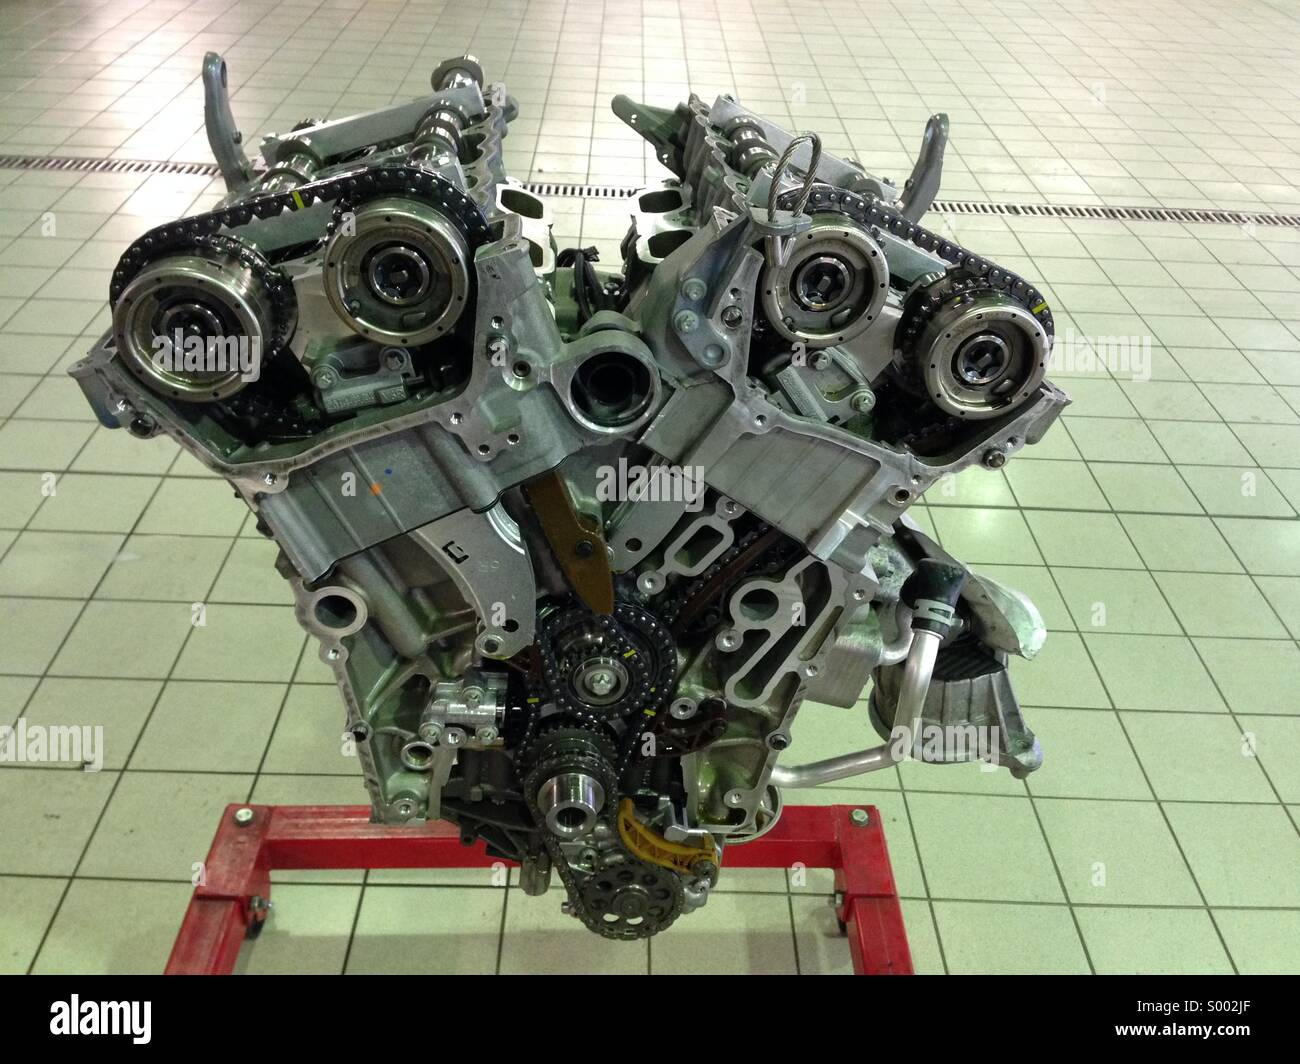 Front of engine timing chain exposed - Stock Image